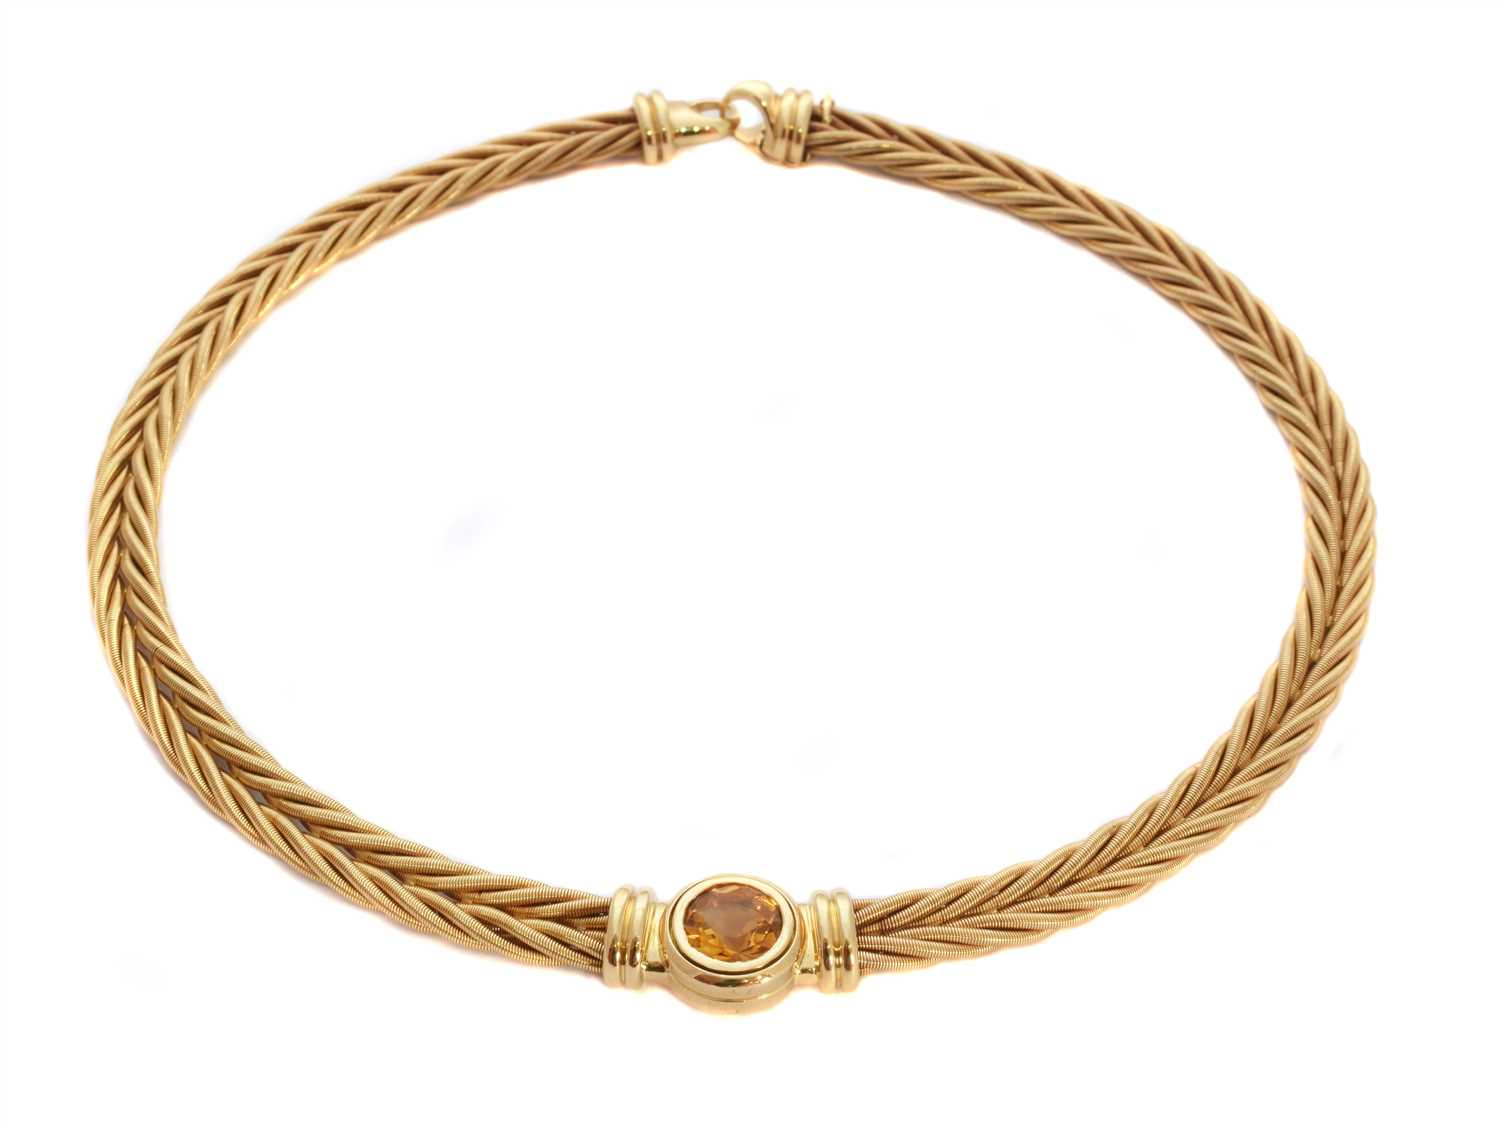 Lot 169-An 18ct gold citrine necklace by Wellendorff